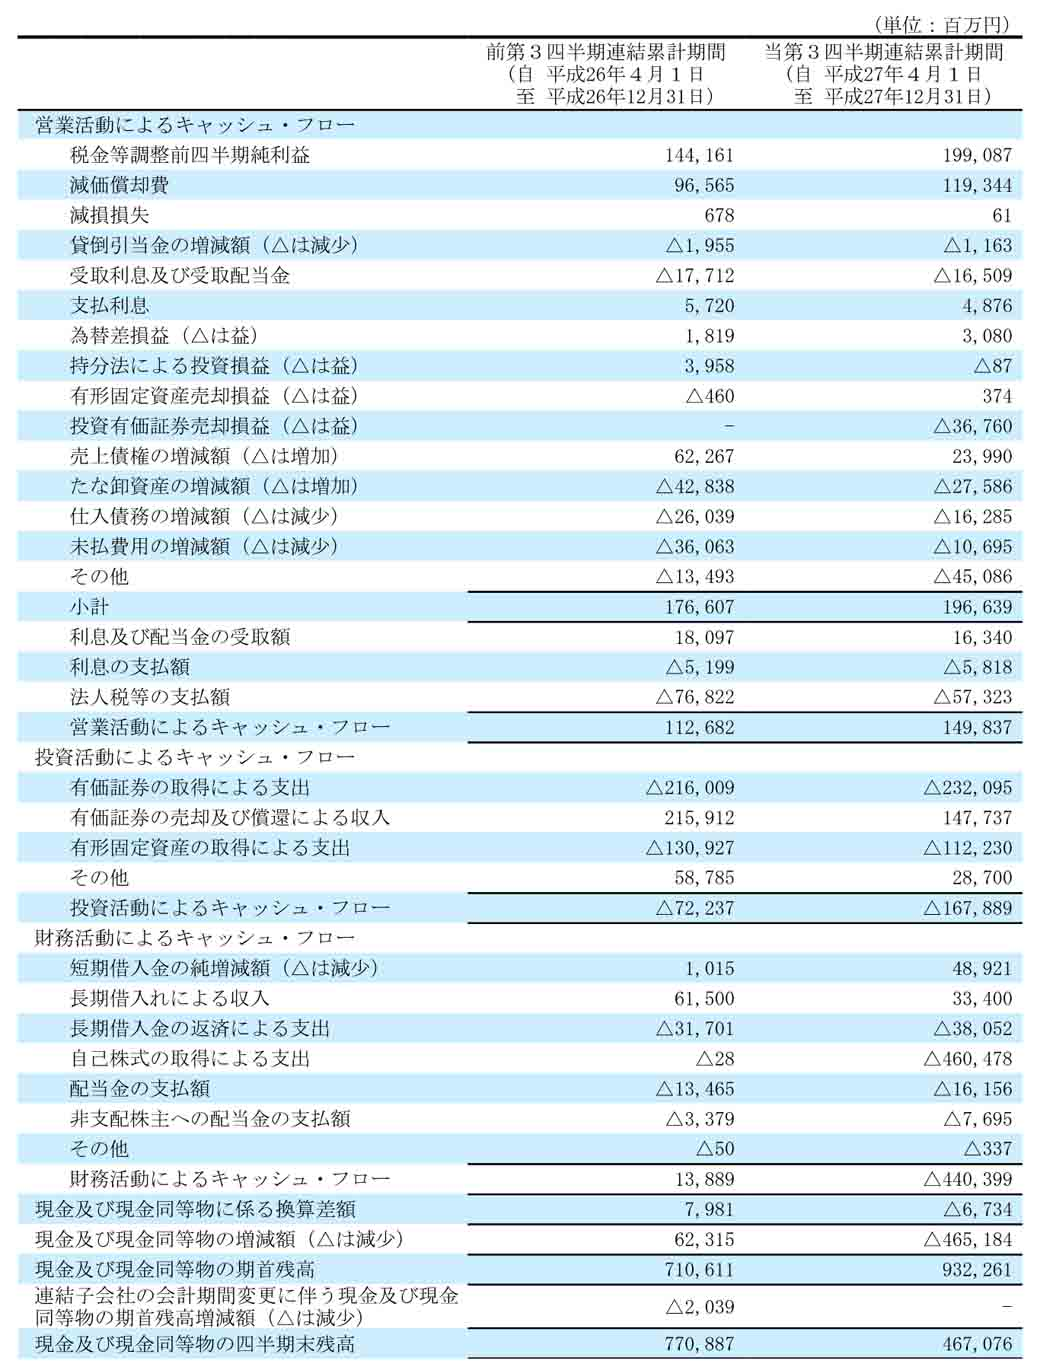 2016-suzuki-ended-march-31-the-third-quarter-results-is-sales-and-profits-a-record-high-profit20160209-3